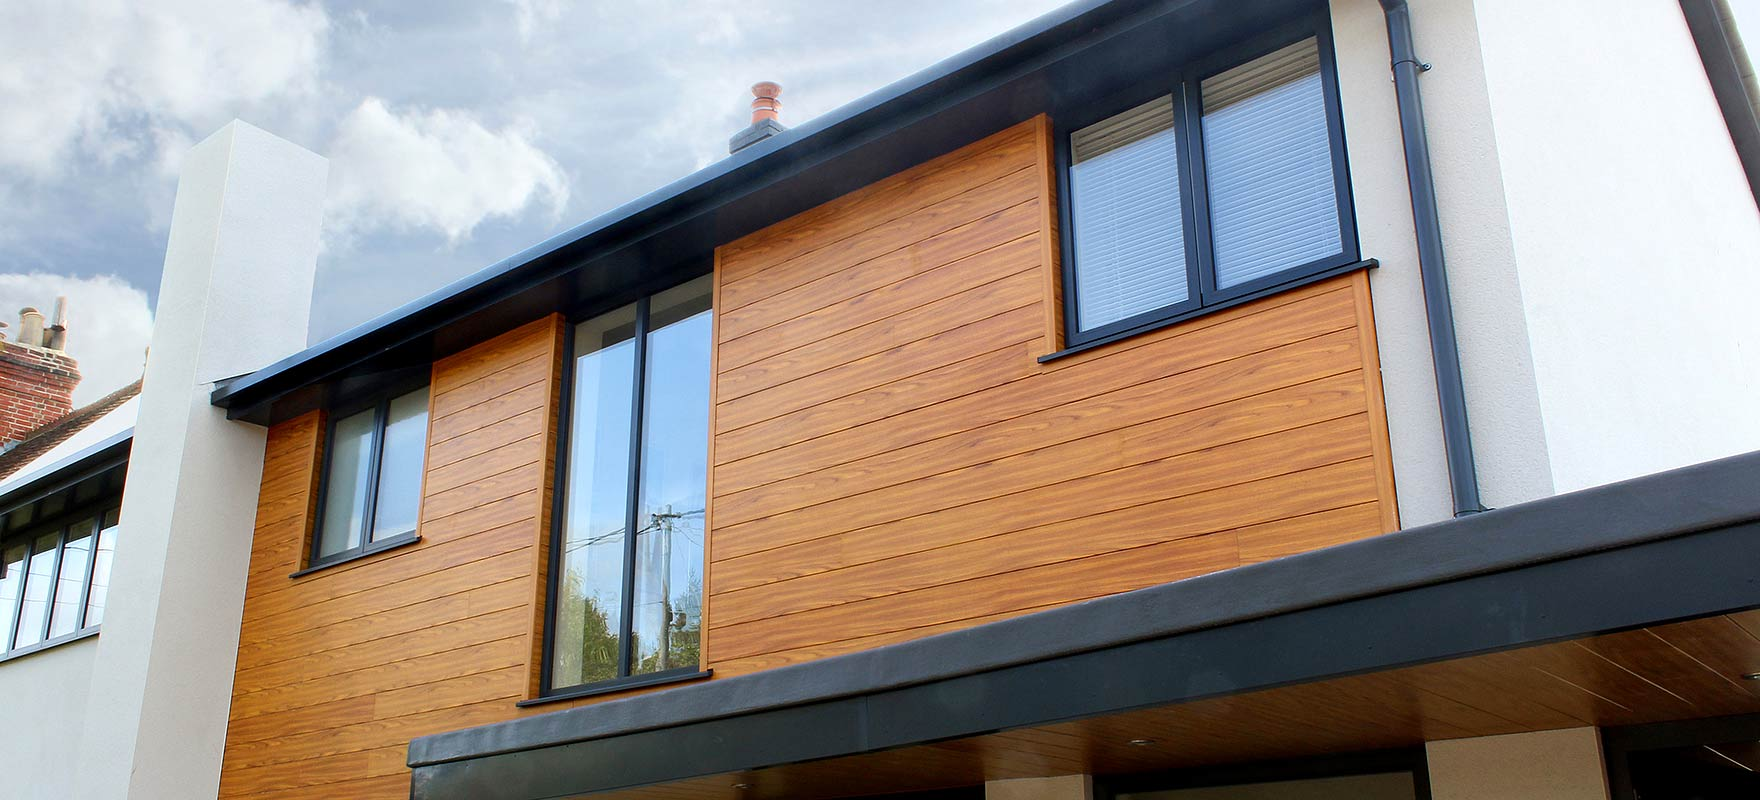 VulcaLap Wood aluminium cladding T&G 'Chestnut'